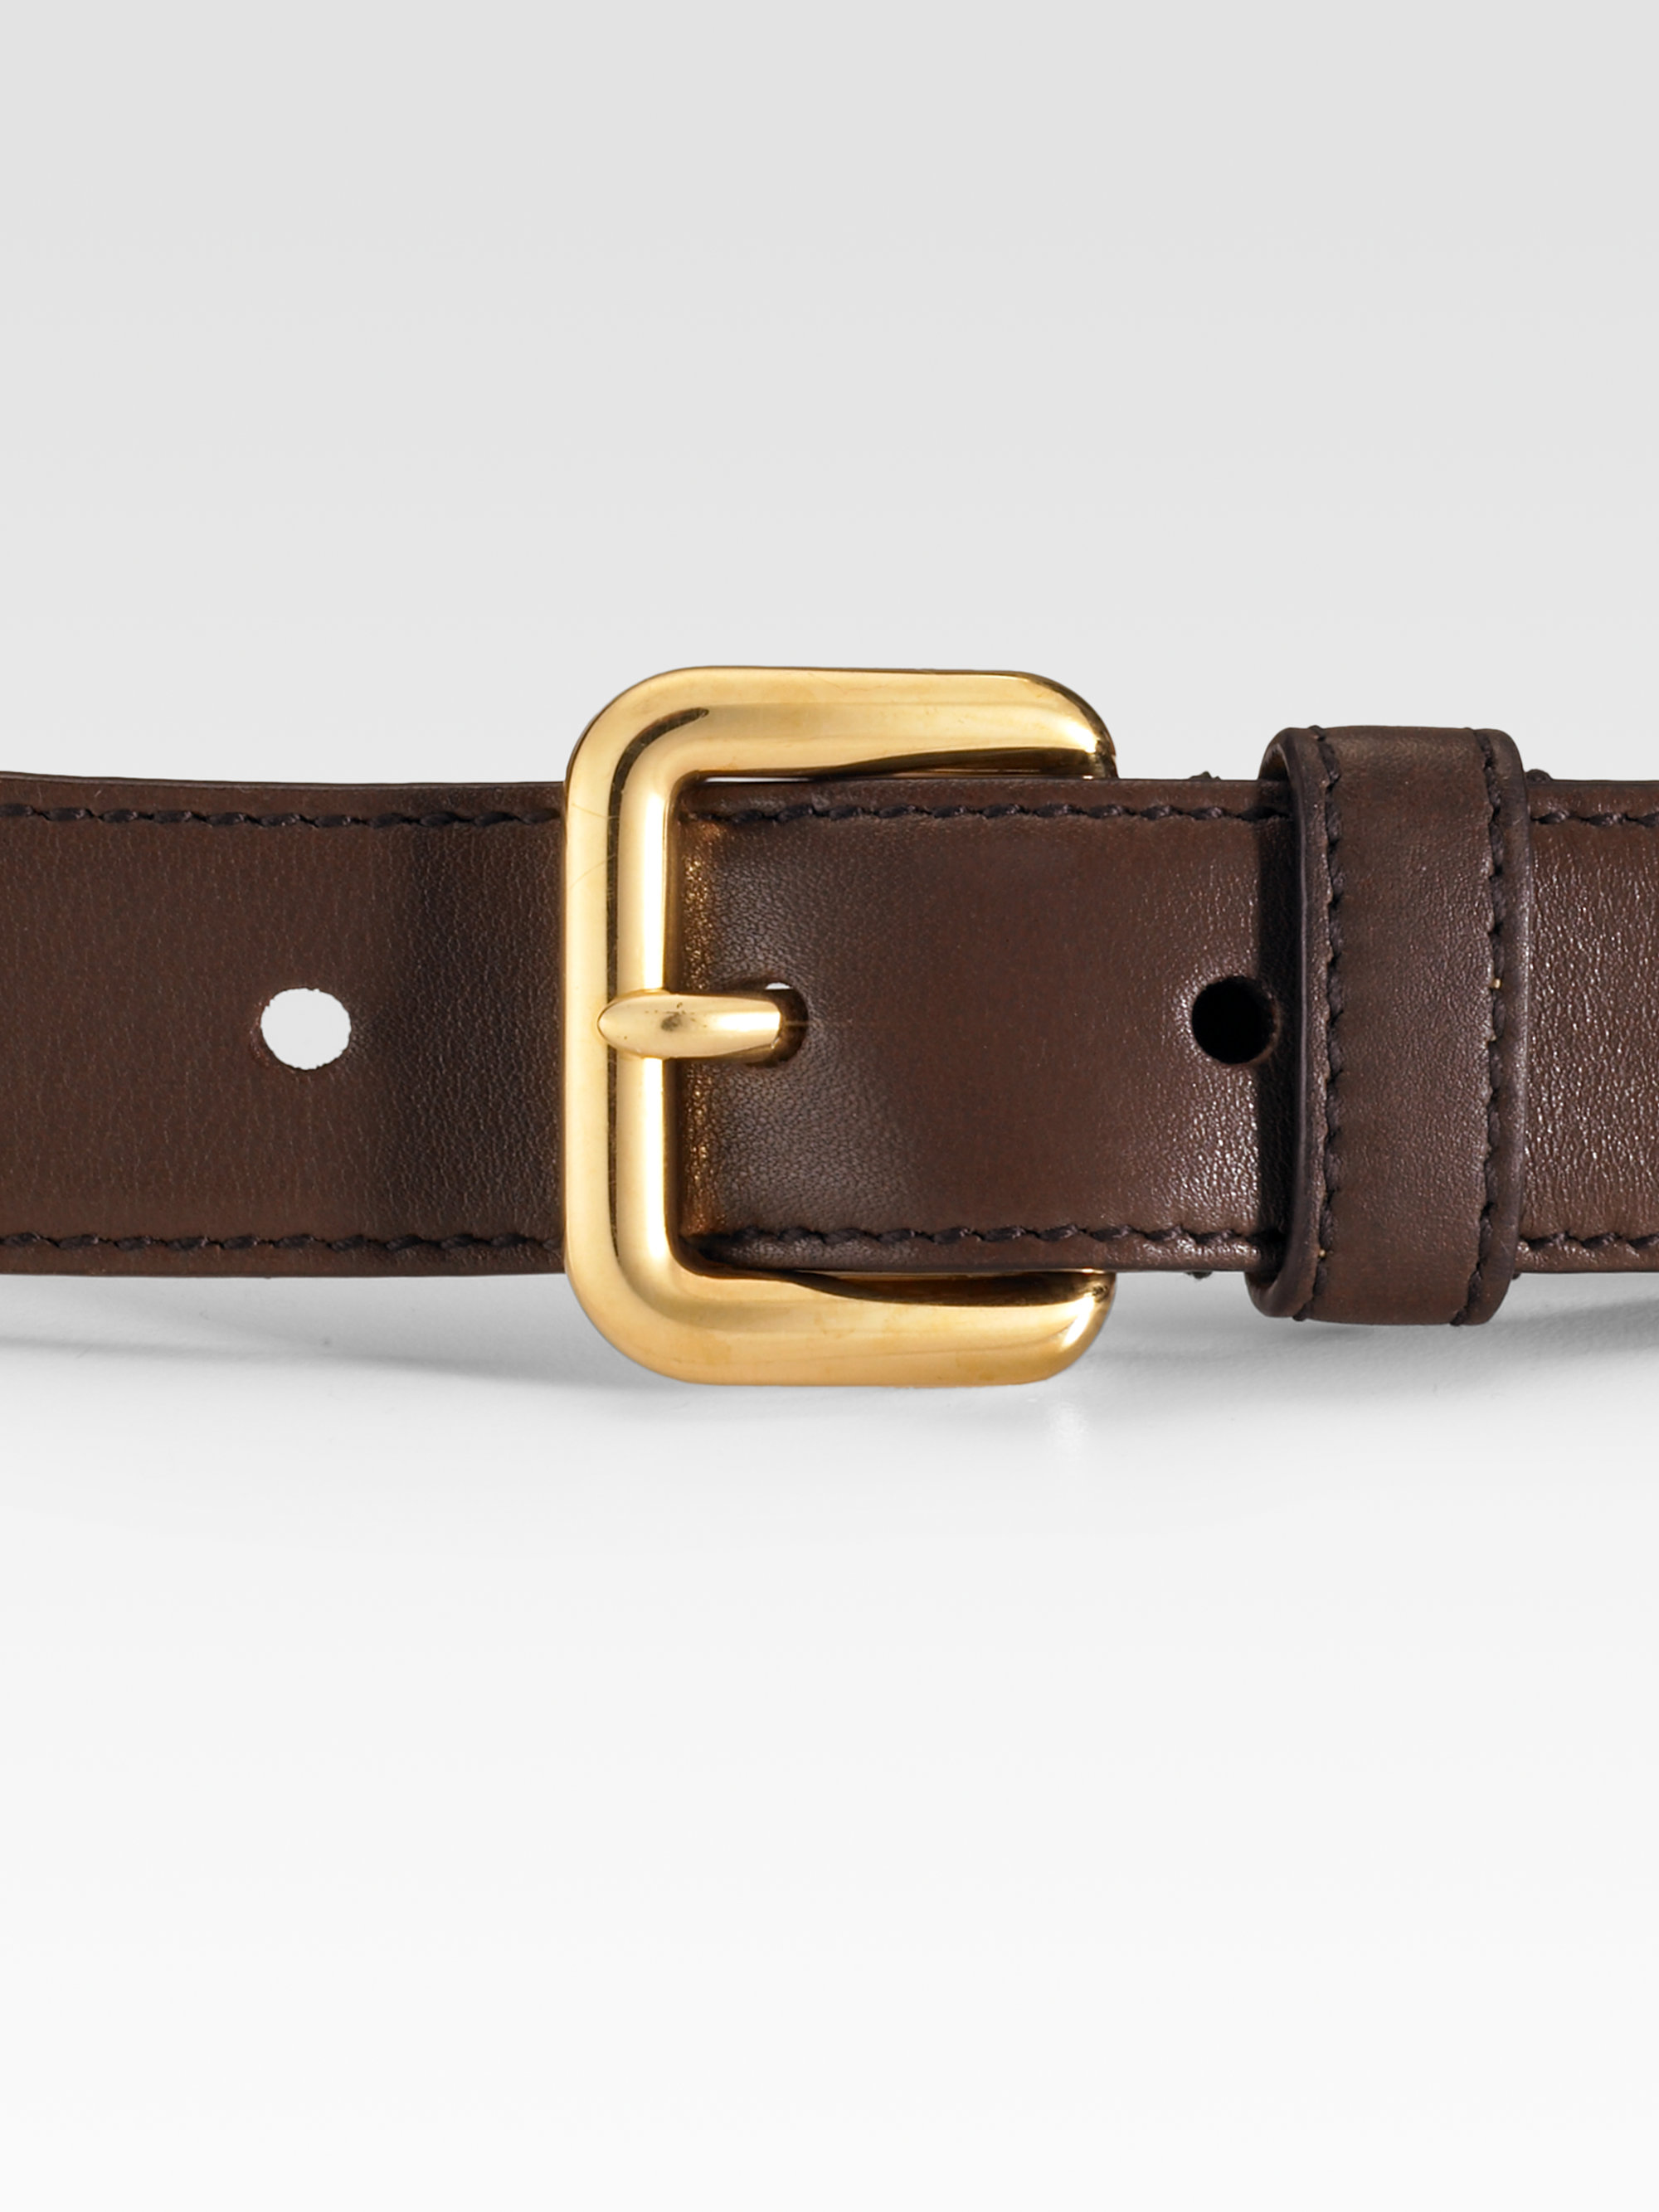 Prada Skinny Vitello Leather Belt in Brown | Lyst